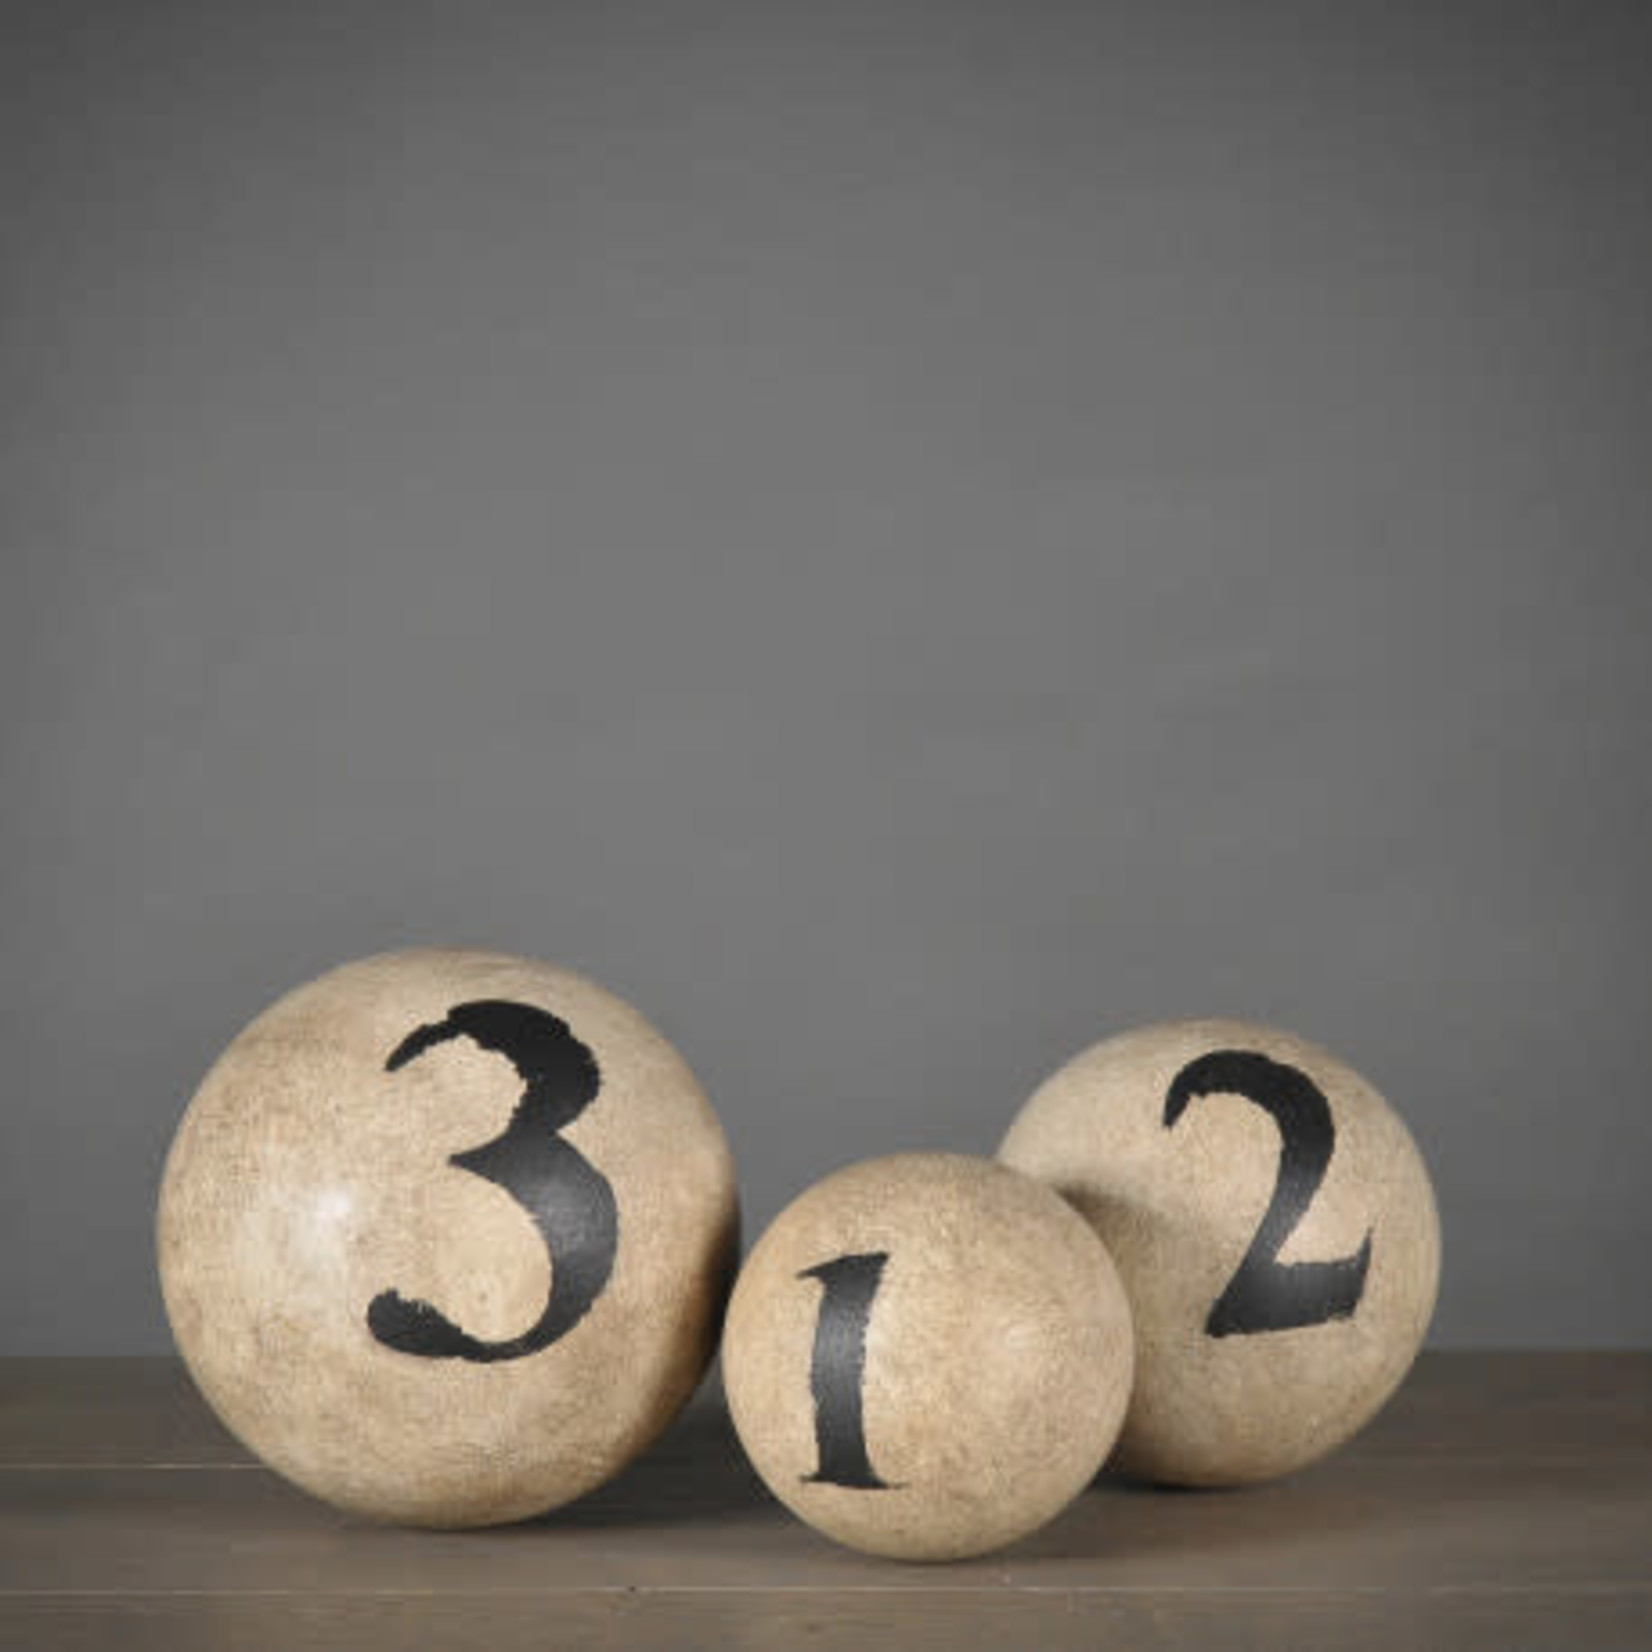 ATELIERS & CSD NUMBERED BALLS